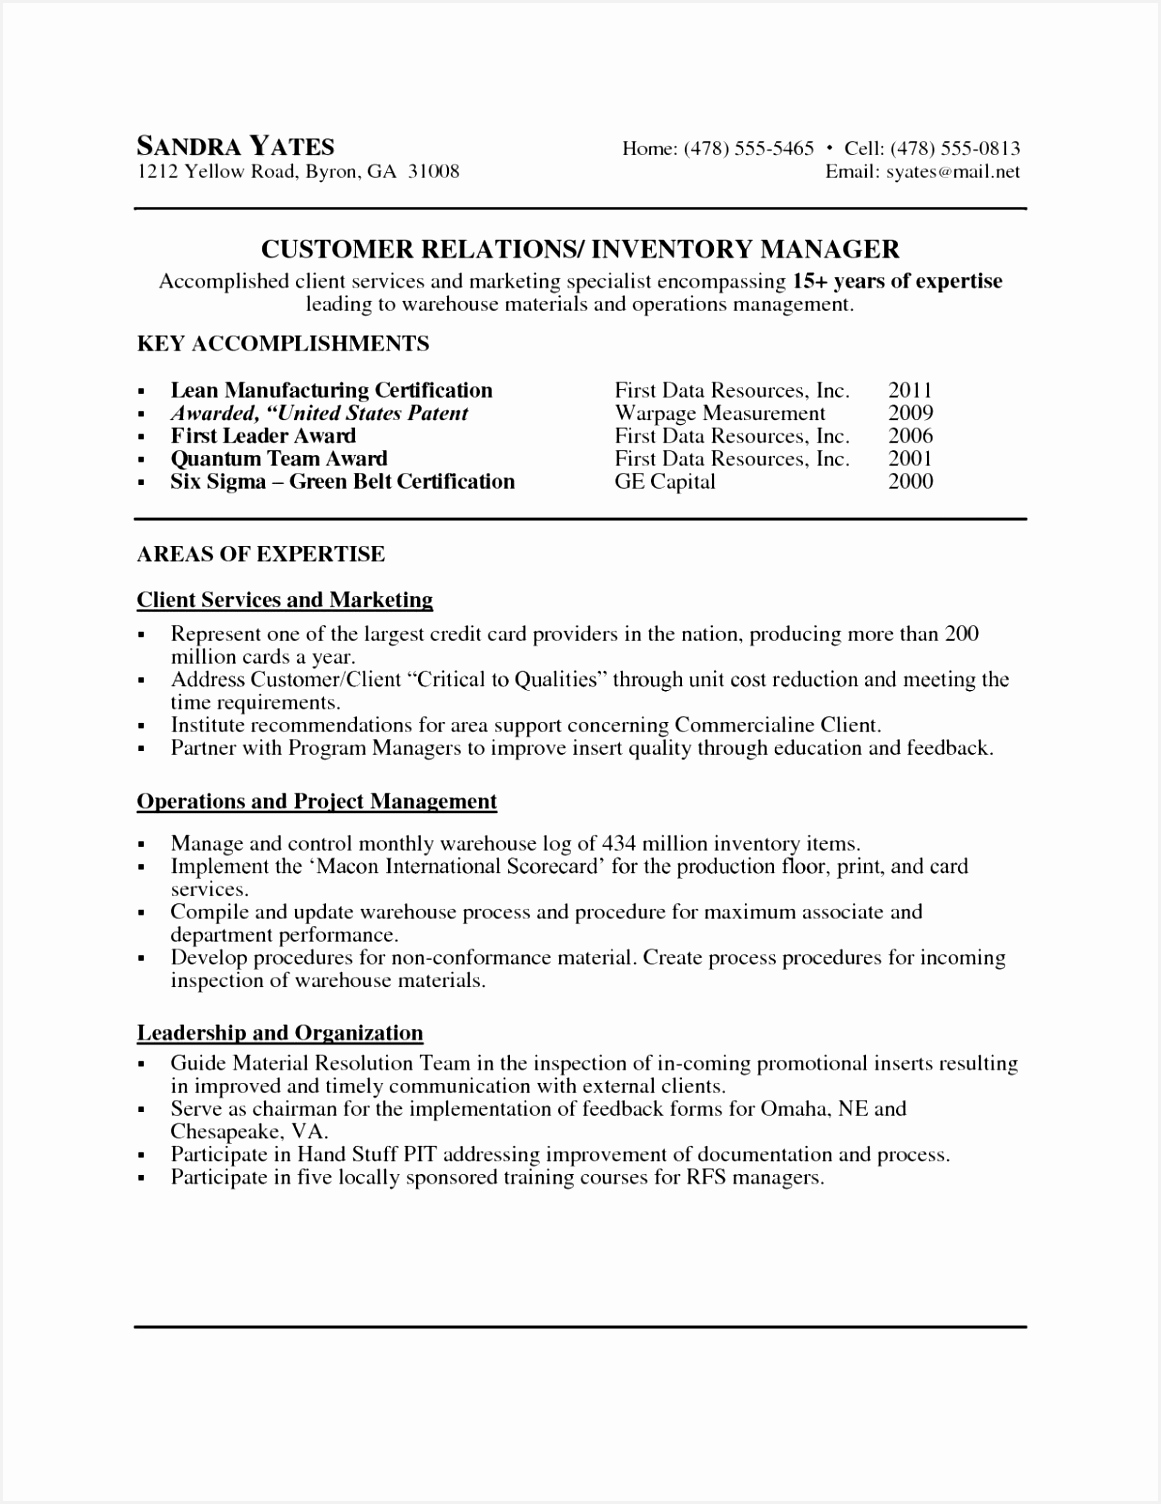 Quality Control Inspector Resume Sample Fghjg Inspirational Recruiter Resume Sample — Resumes Project15041161